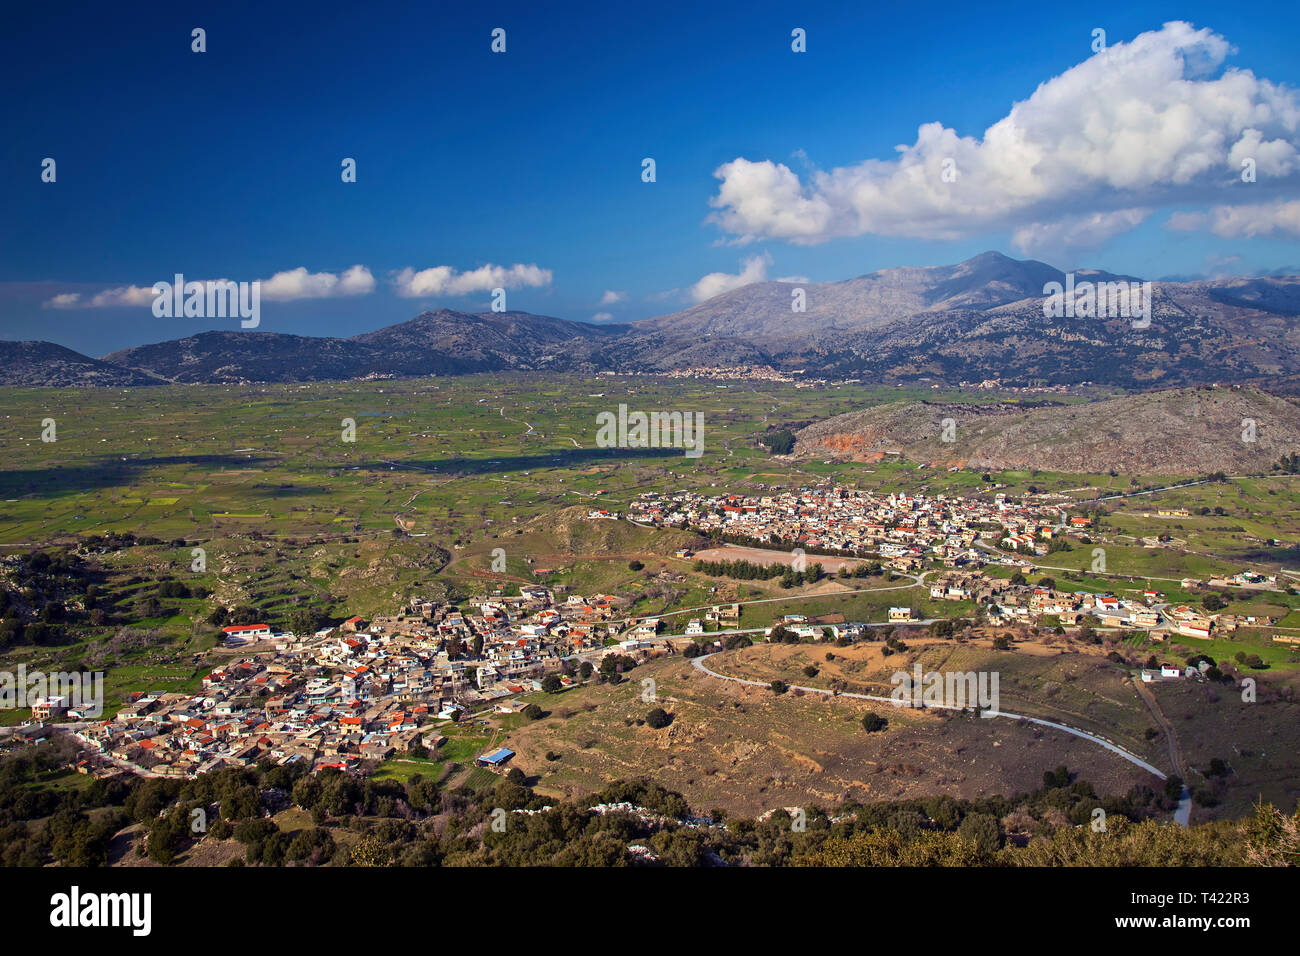 View of Lassithi plateau. You can see Avrakontes (front left) Agios Georgios (front right) and Tzermiado villages (back). Crete, Greece. - Stock Image